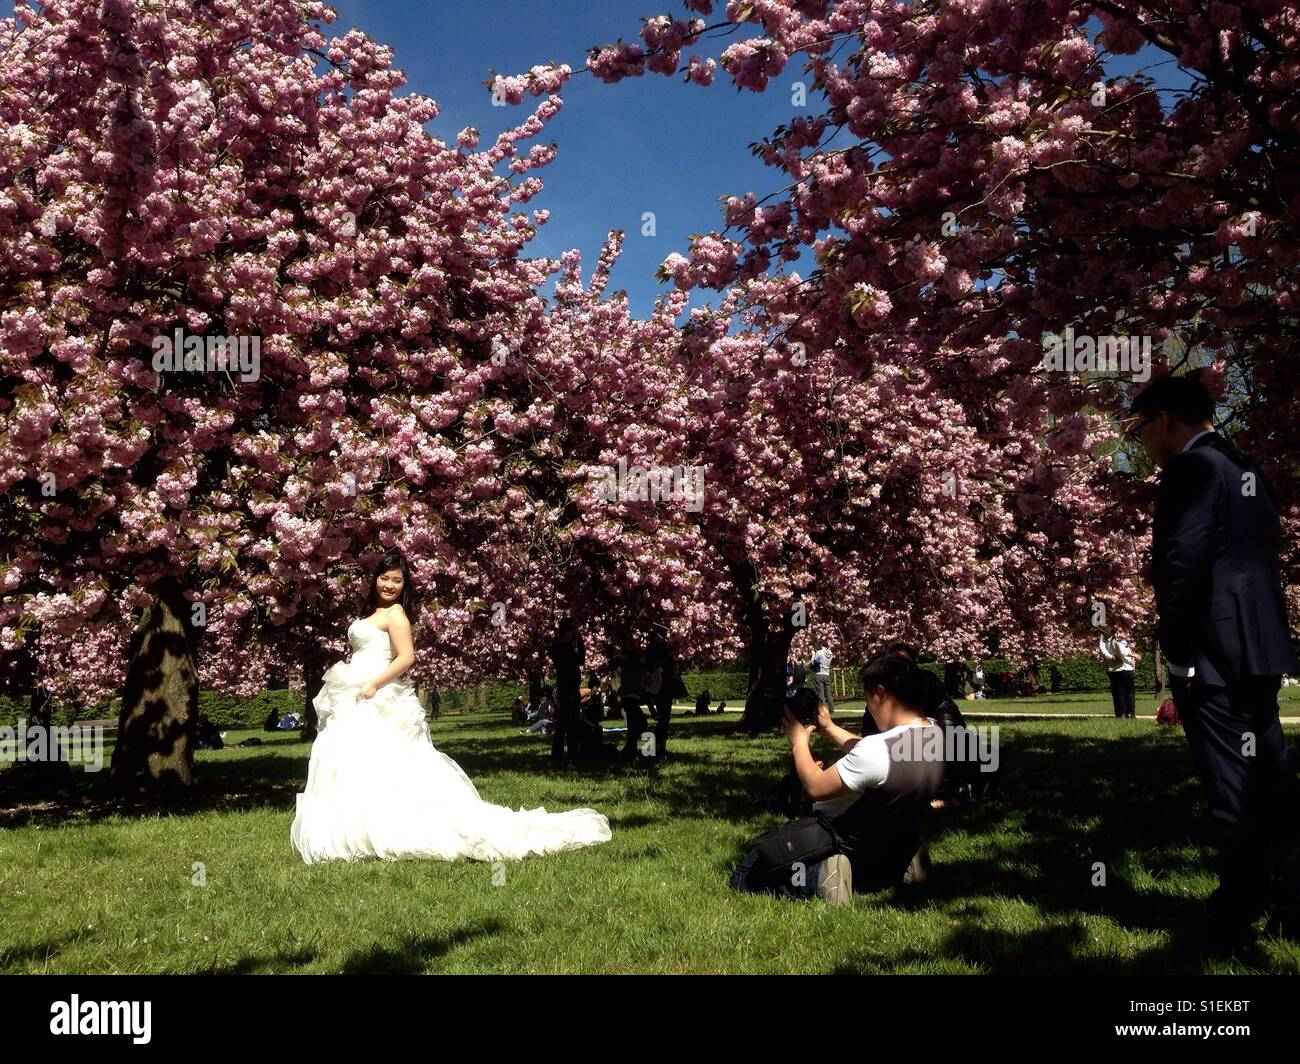 Paris Chinese Spring bride with Cherry blossom gardén being photographed - Stock Image